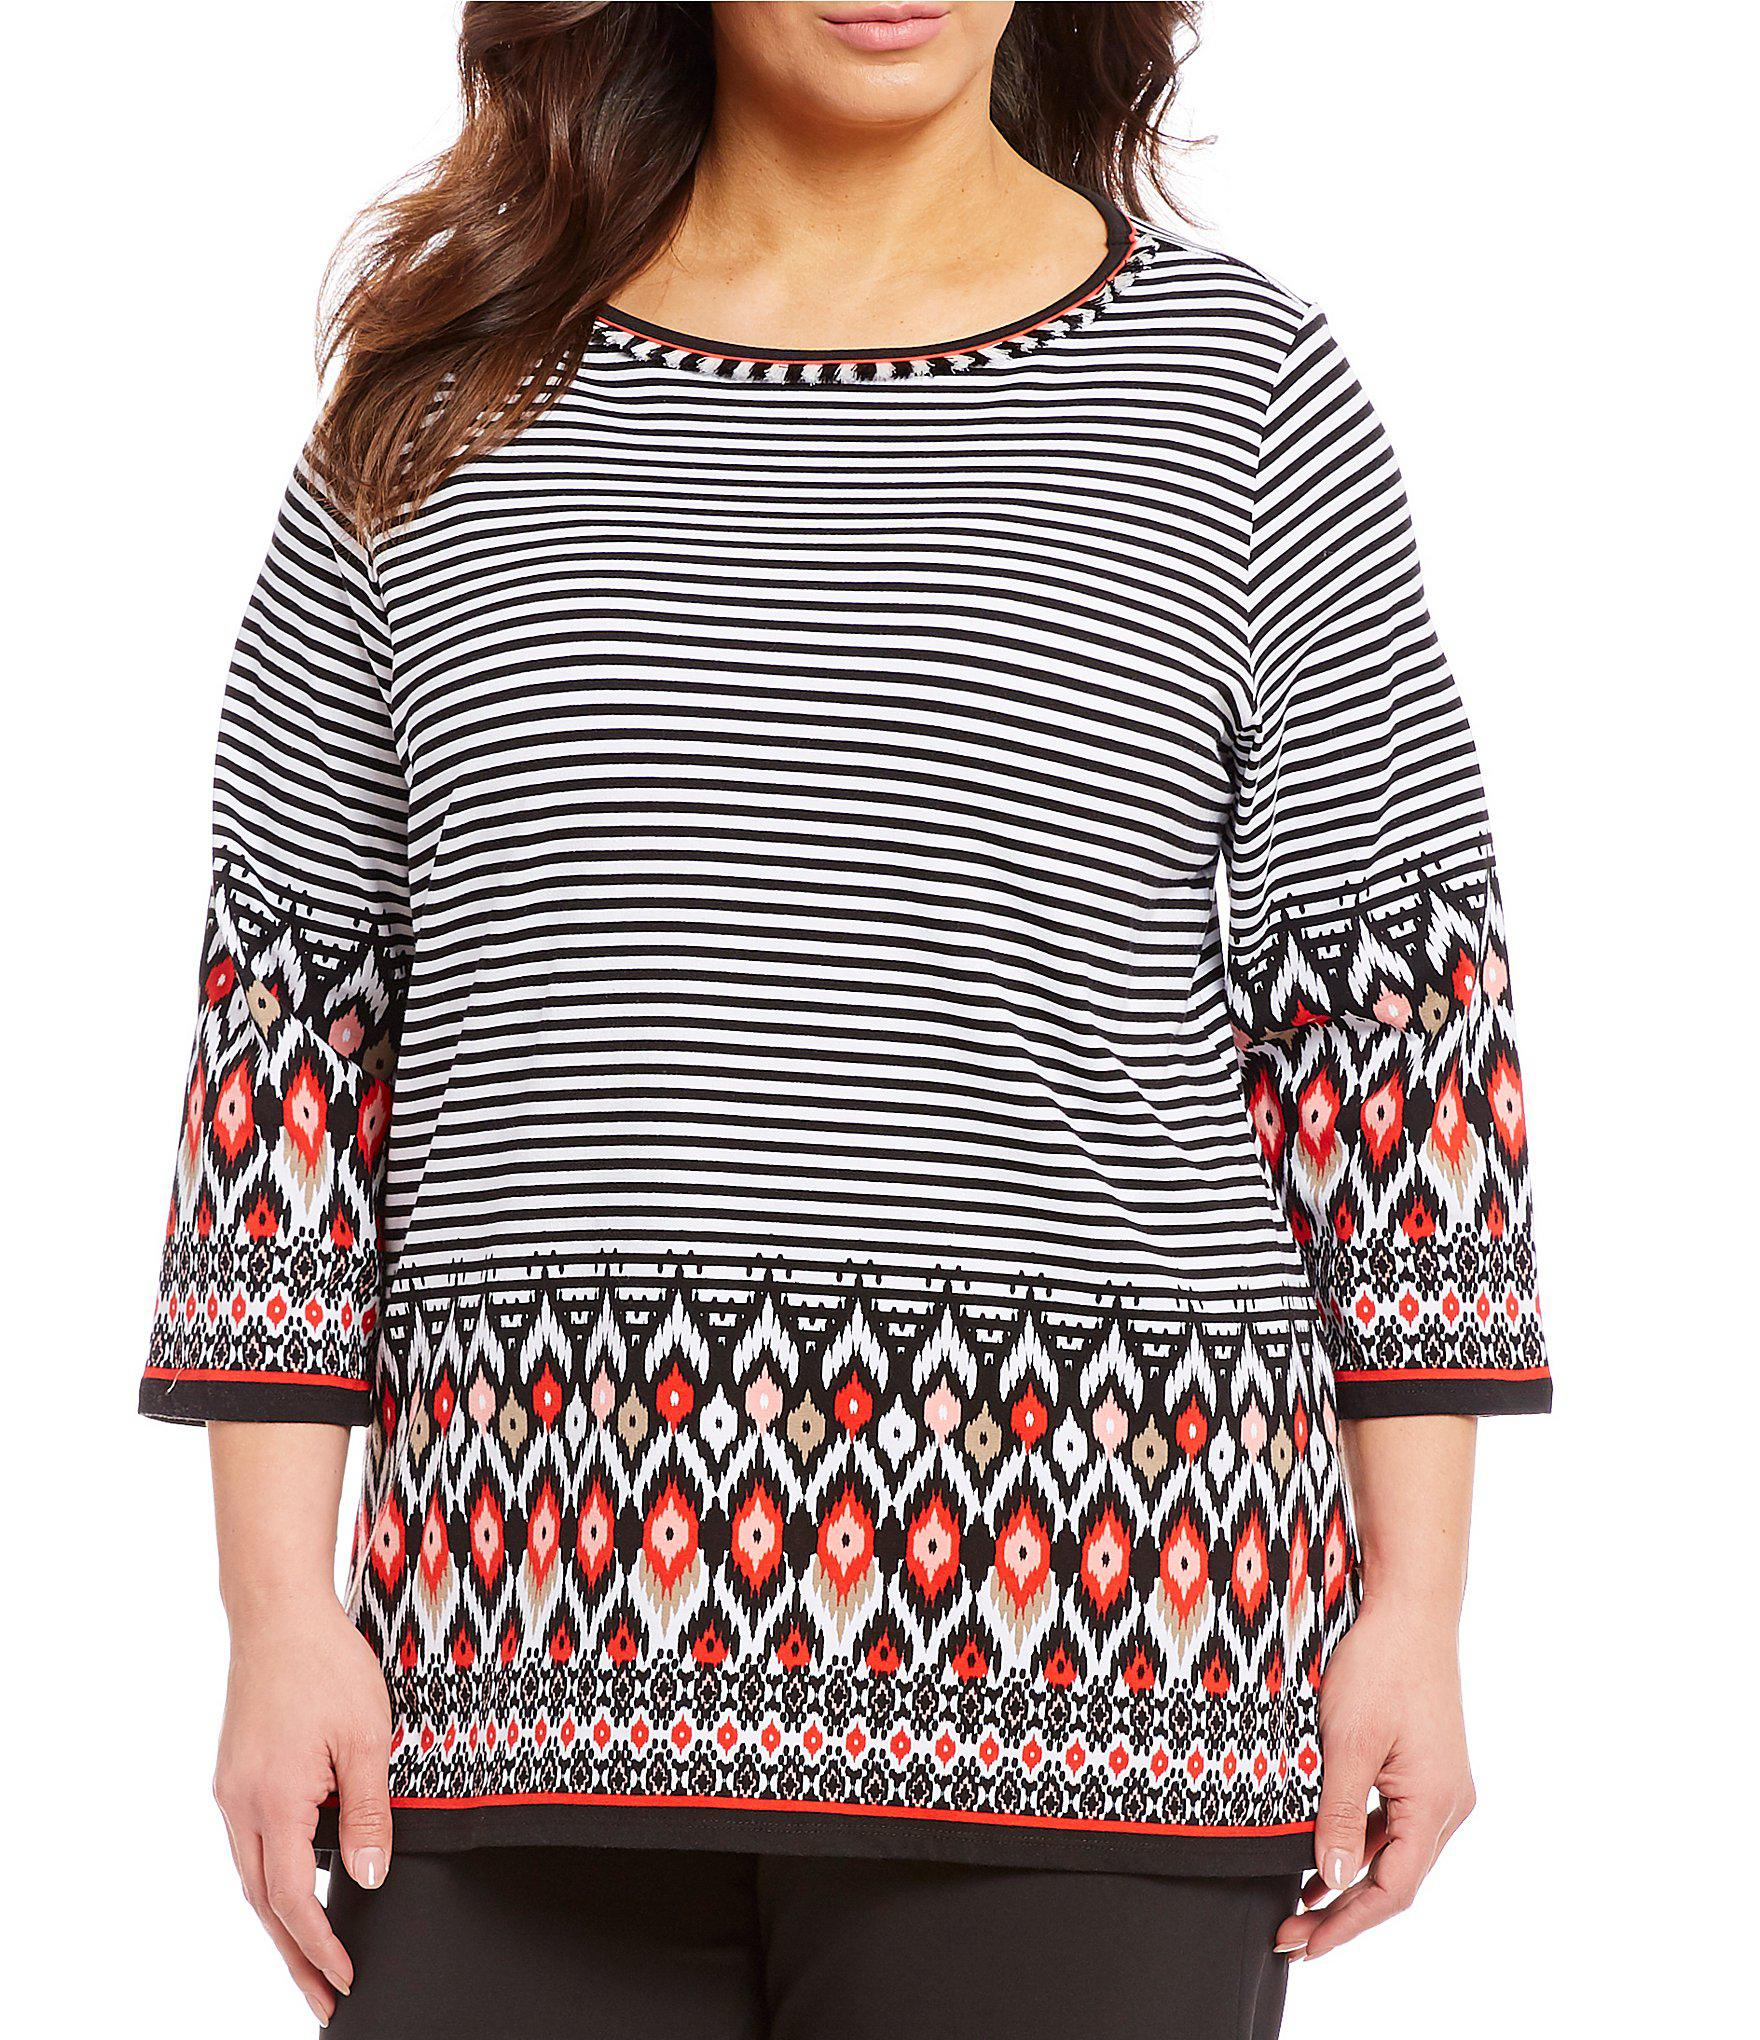 a490cac666fb4 Lyst - Ruby Rd Plus Size Ikat Stripe Border Print Embellished Boat ...